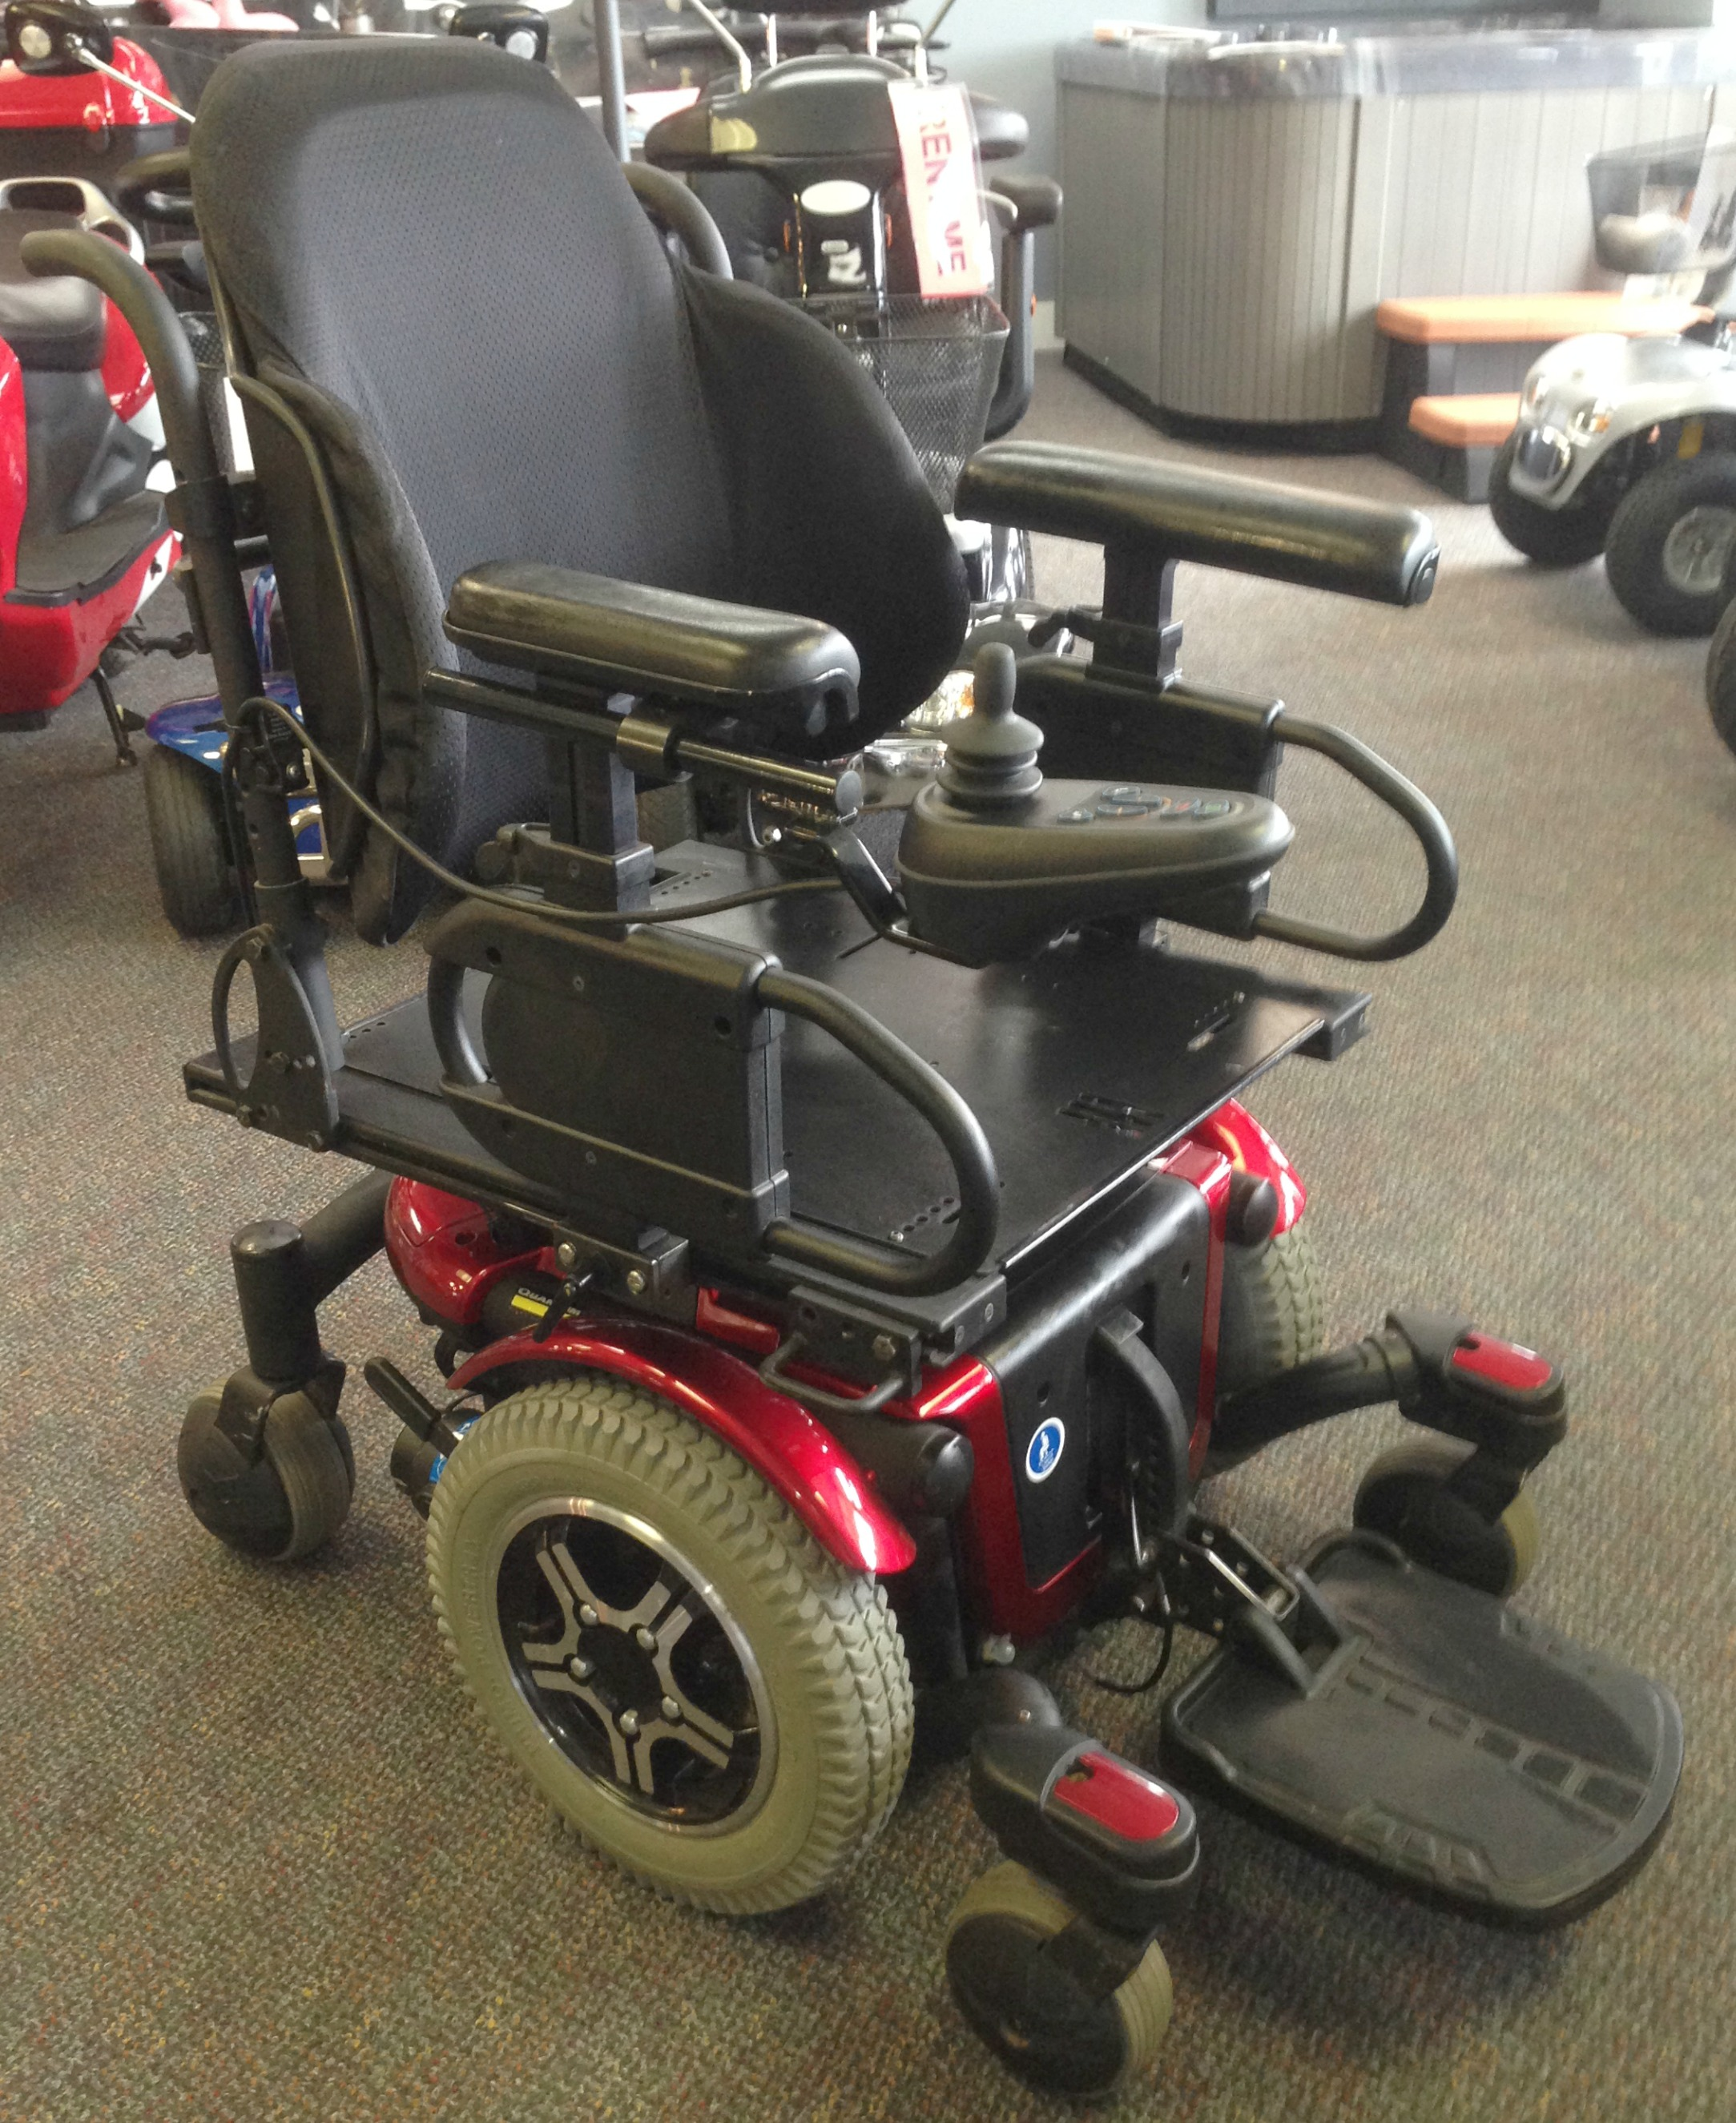 power chairs for sale high chair tray used alberni ca if you are looking a good we have some worth checking out this one is just in and great shape x2 12 volt 50 amp batteries